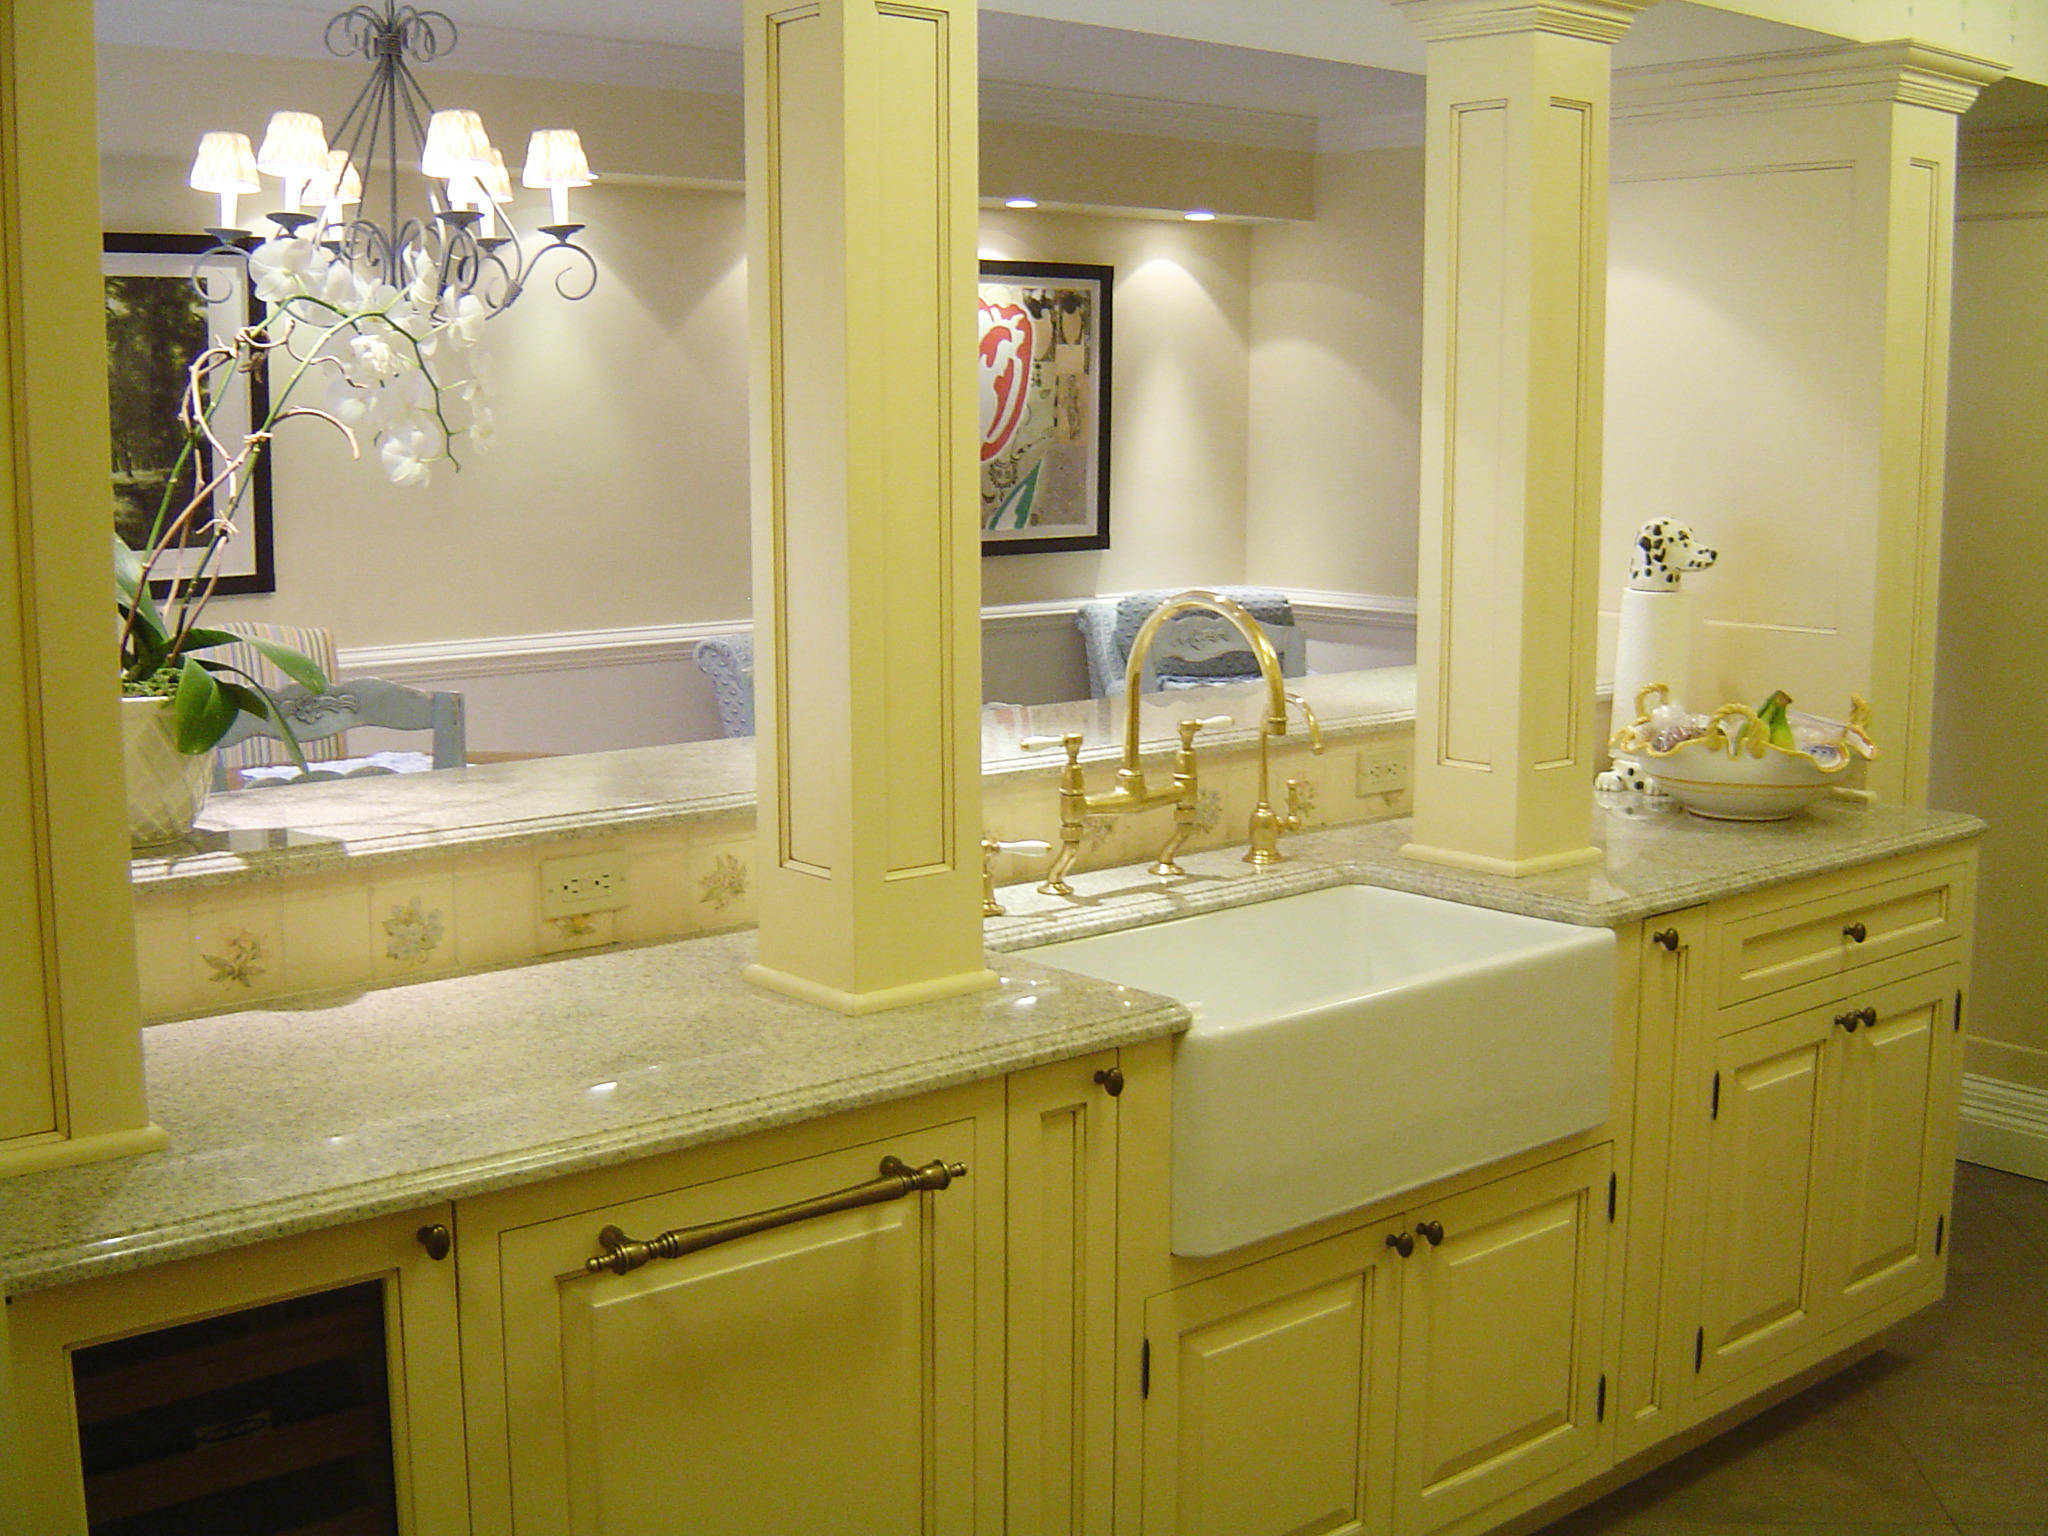 Nyc General Contractor Brooklyn New York Ny